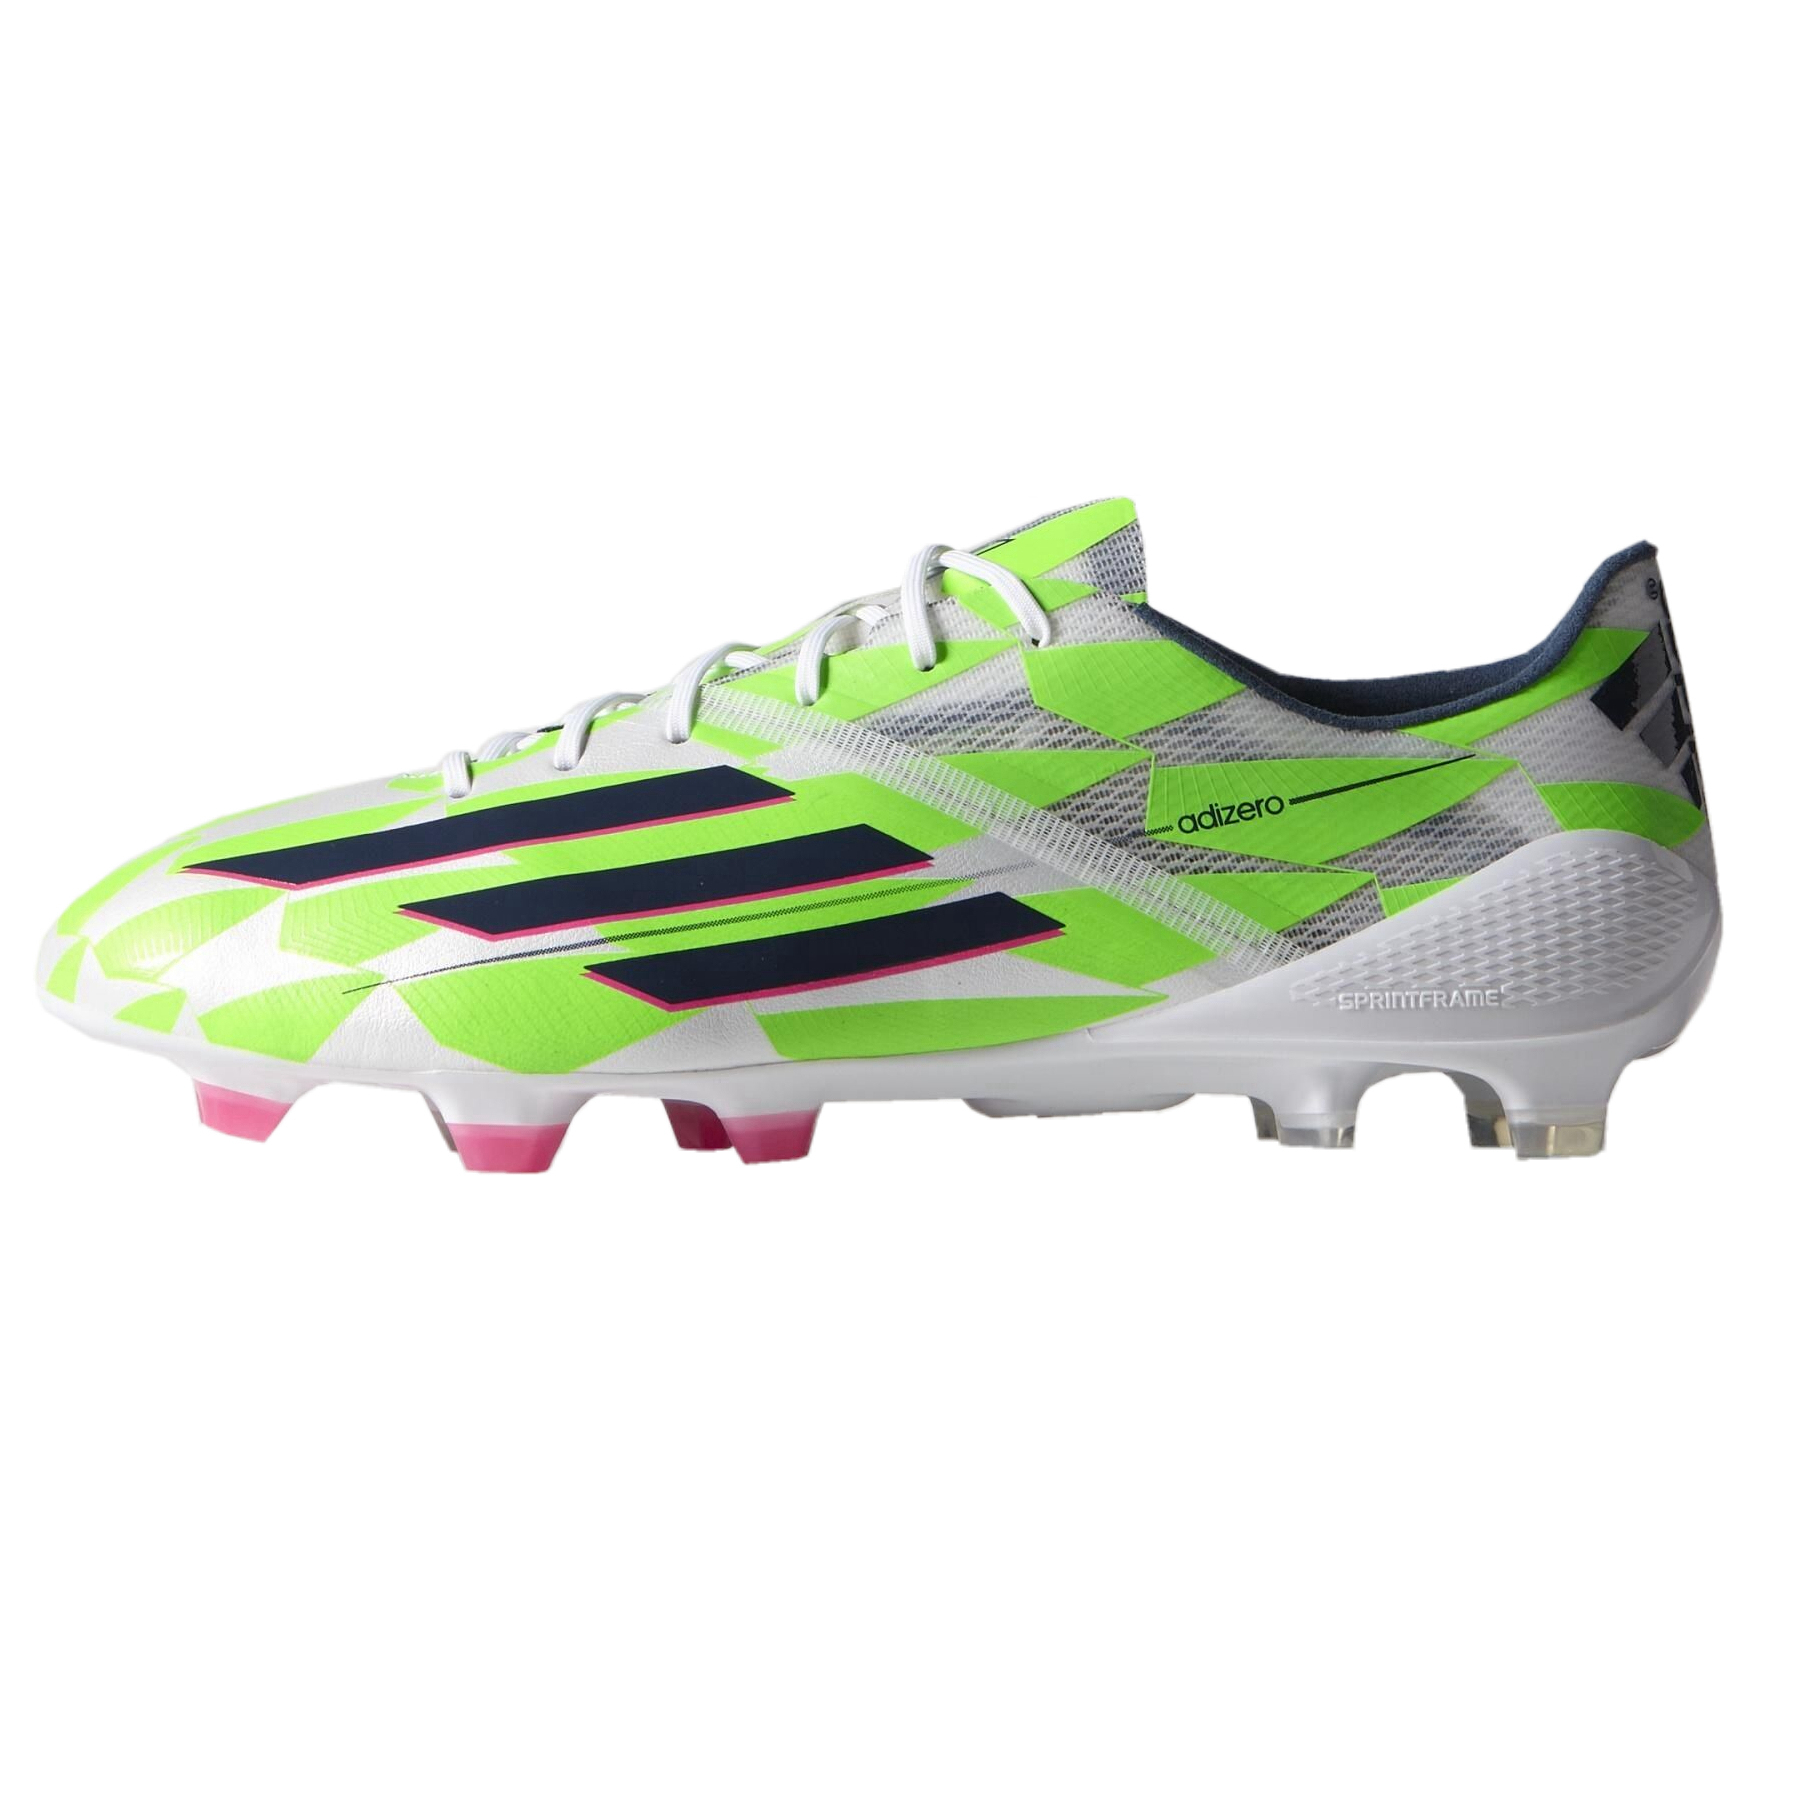 adidas f50 adizero trx fg football shoes soccer fg cam. Black Bedroom Furniture Sets. Home Design Ideas